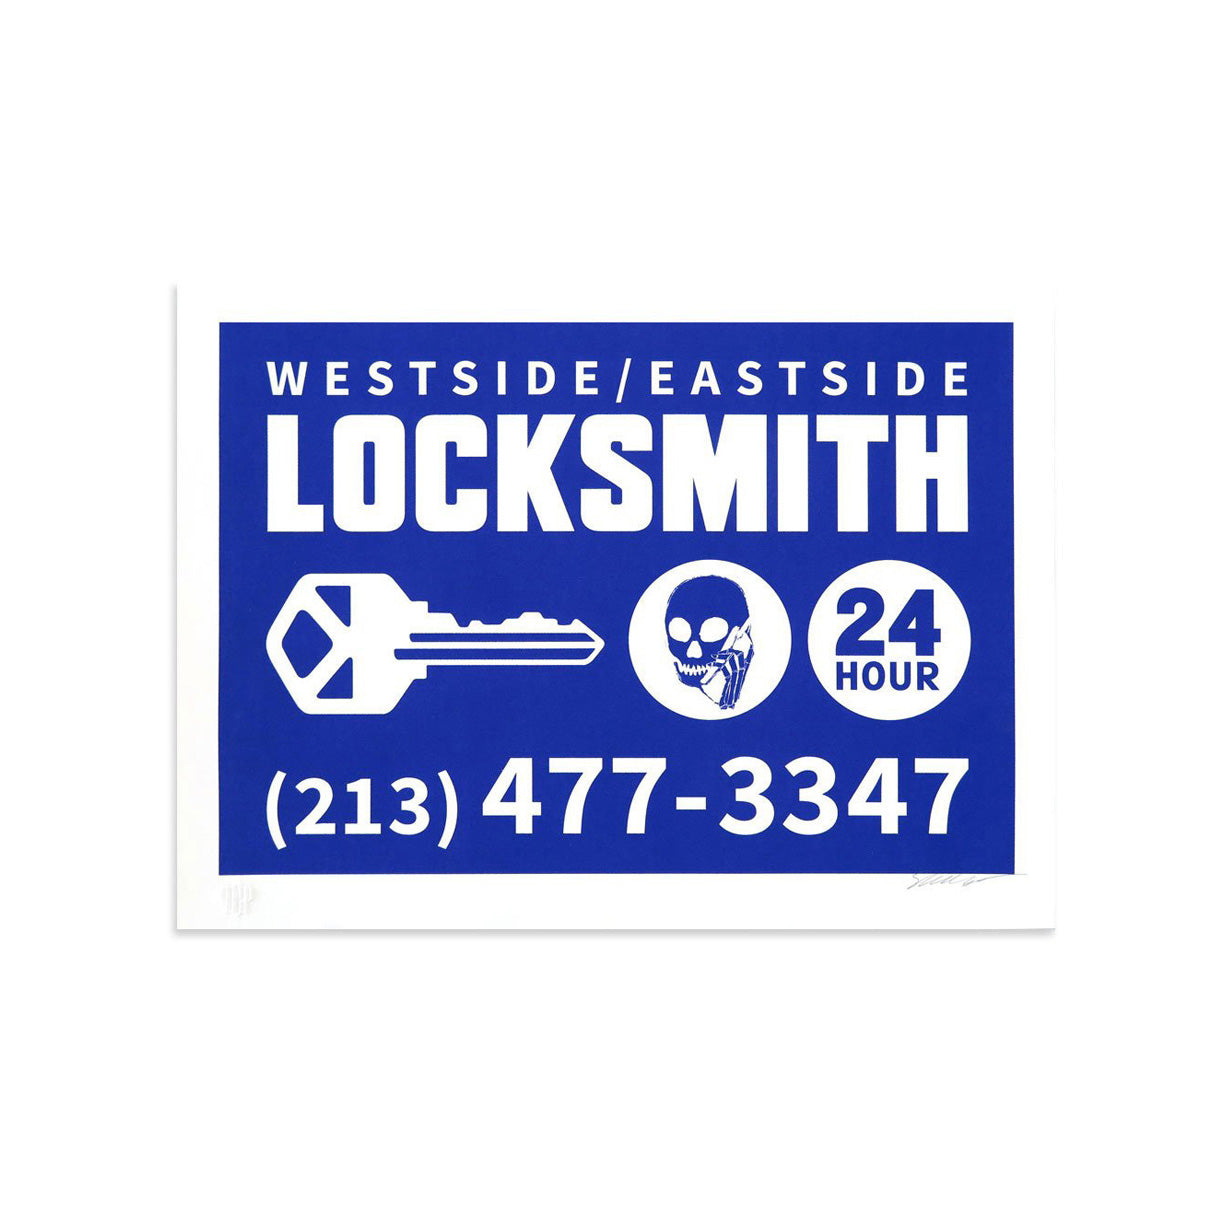 Locksmith by Skullphone | Print | Poster Child Prints